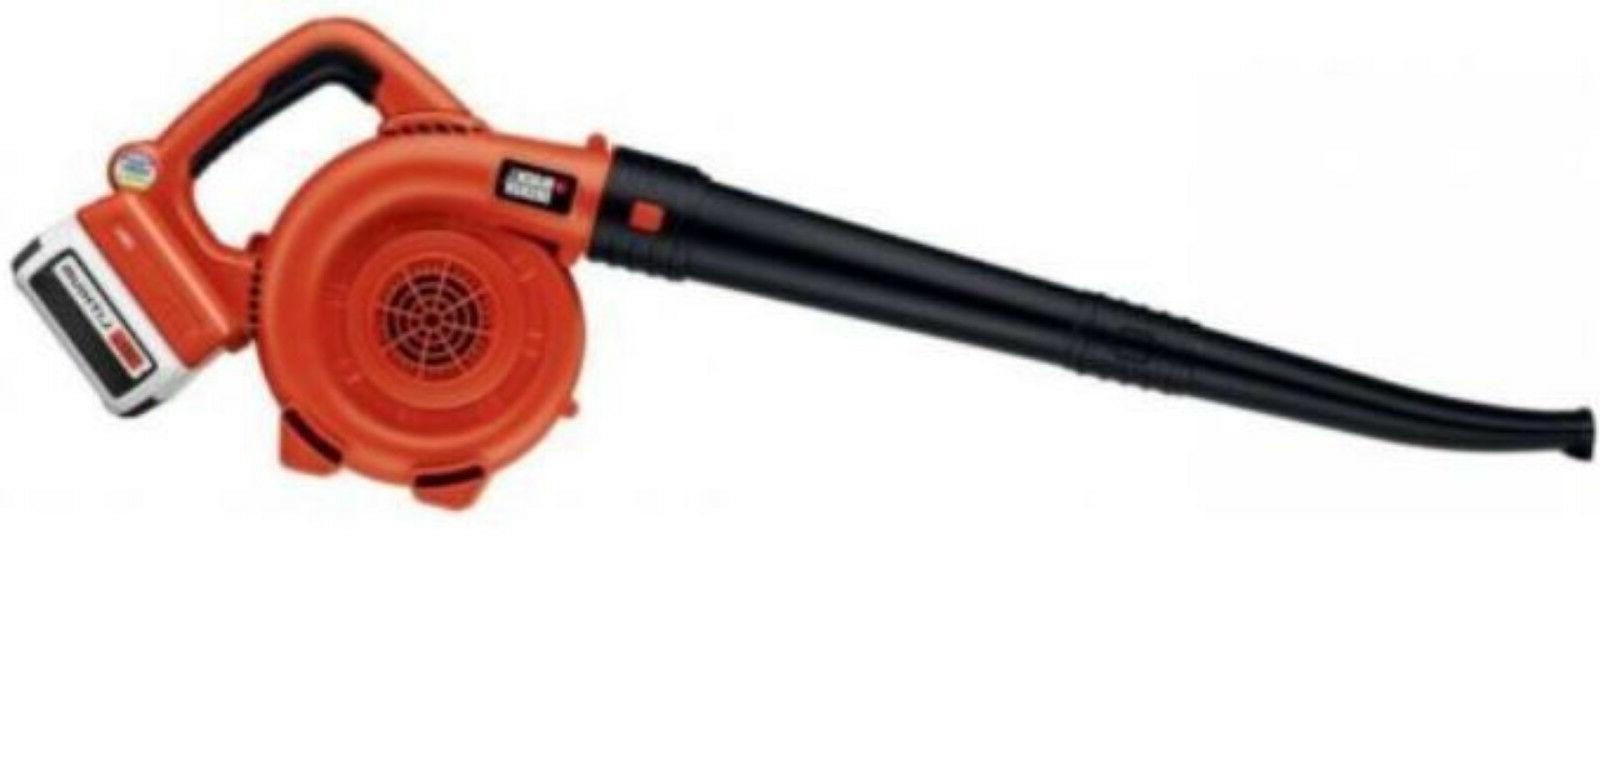 lsw36 lithium ion cordless sweeper